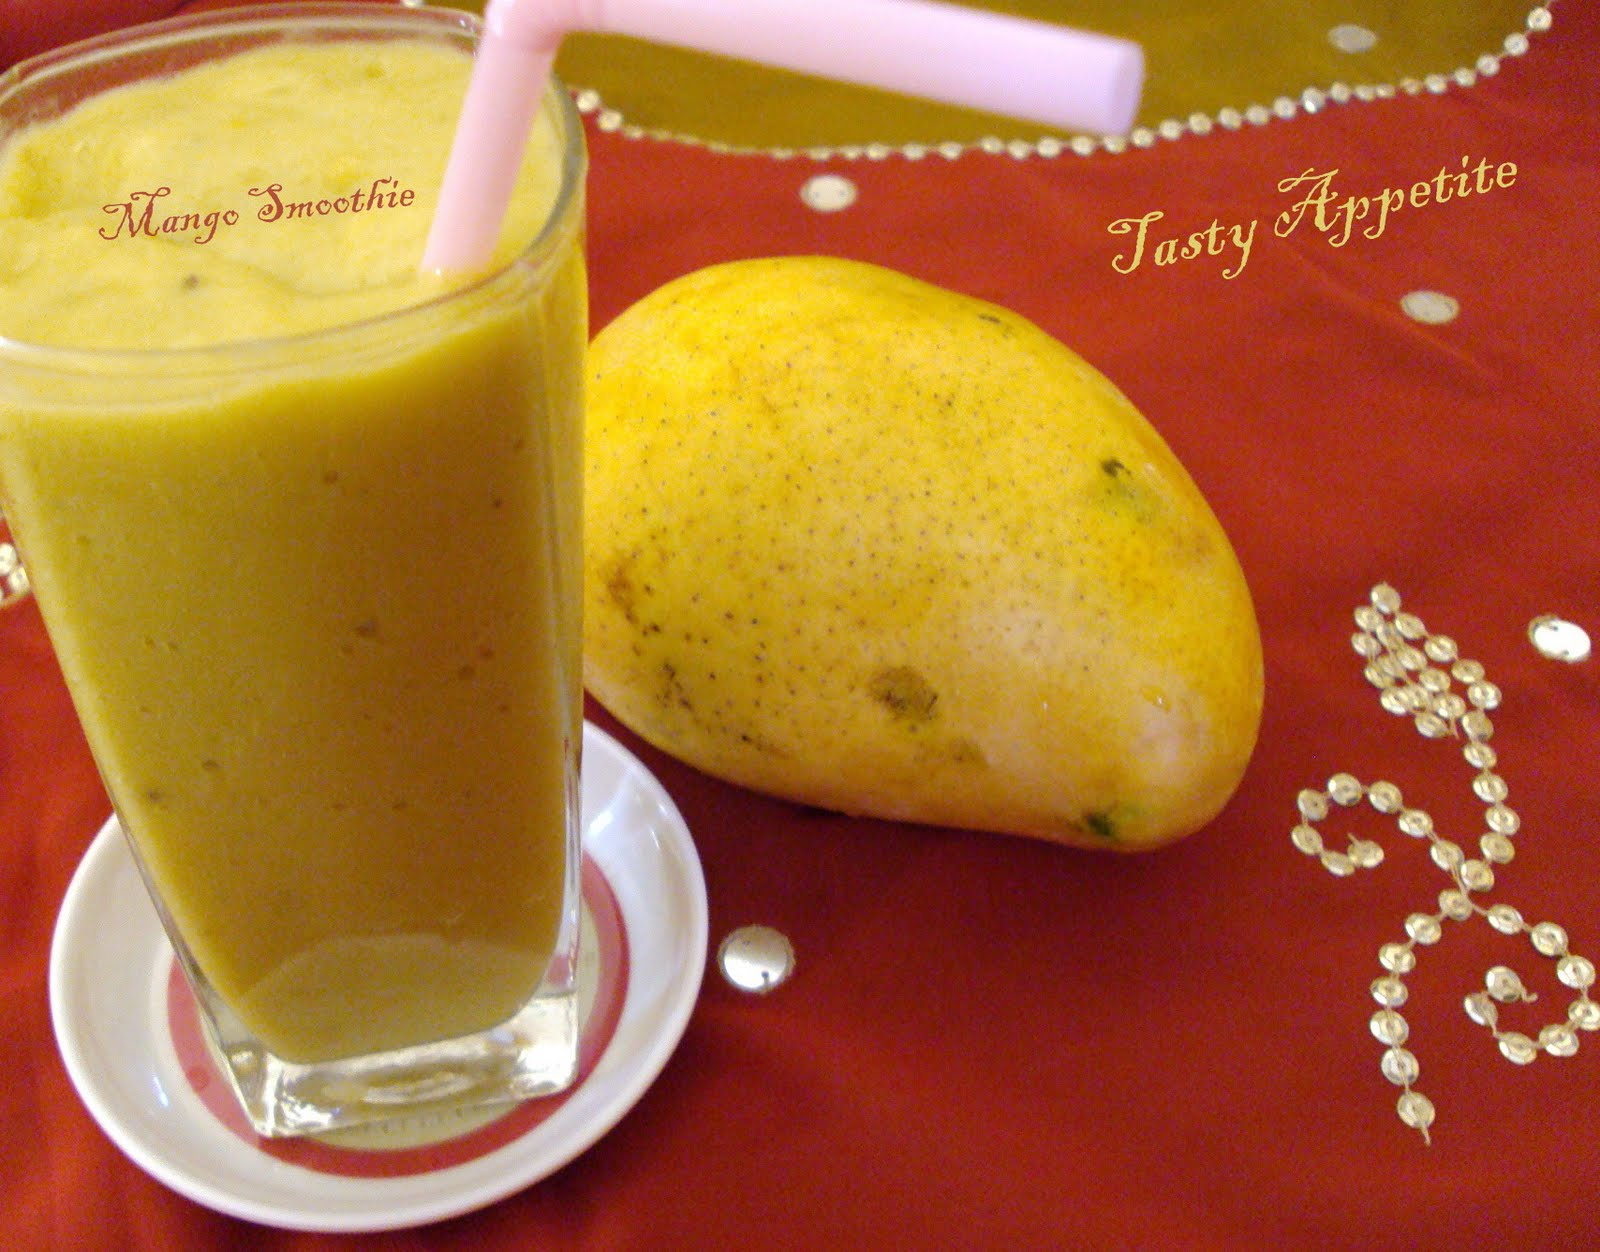 mango smoothie save recipe print recipe ingredients 1 large ripe mango ...